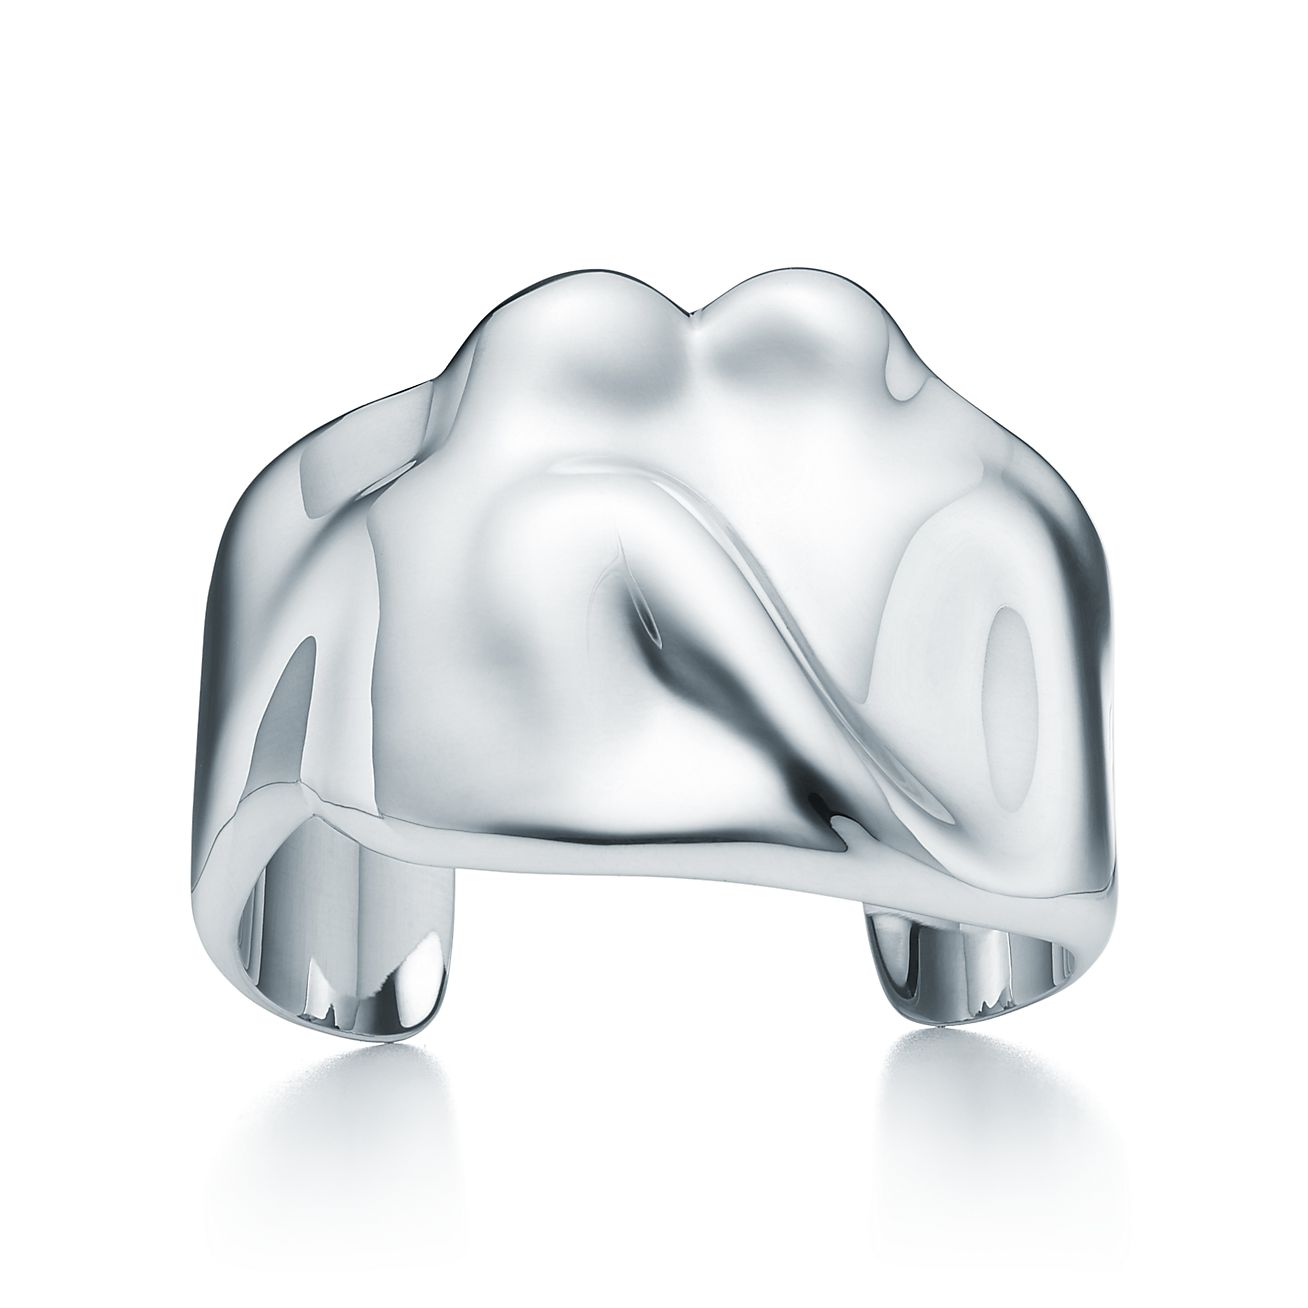 gemini rings virgo silver sterling products